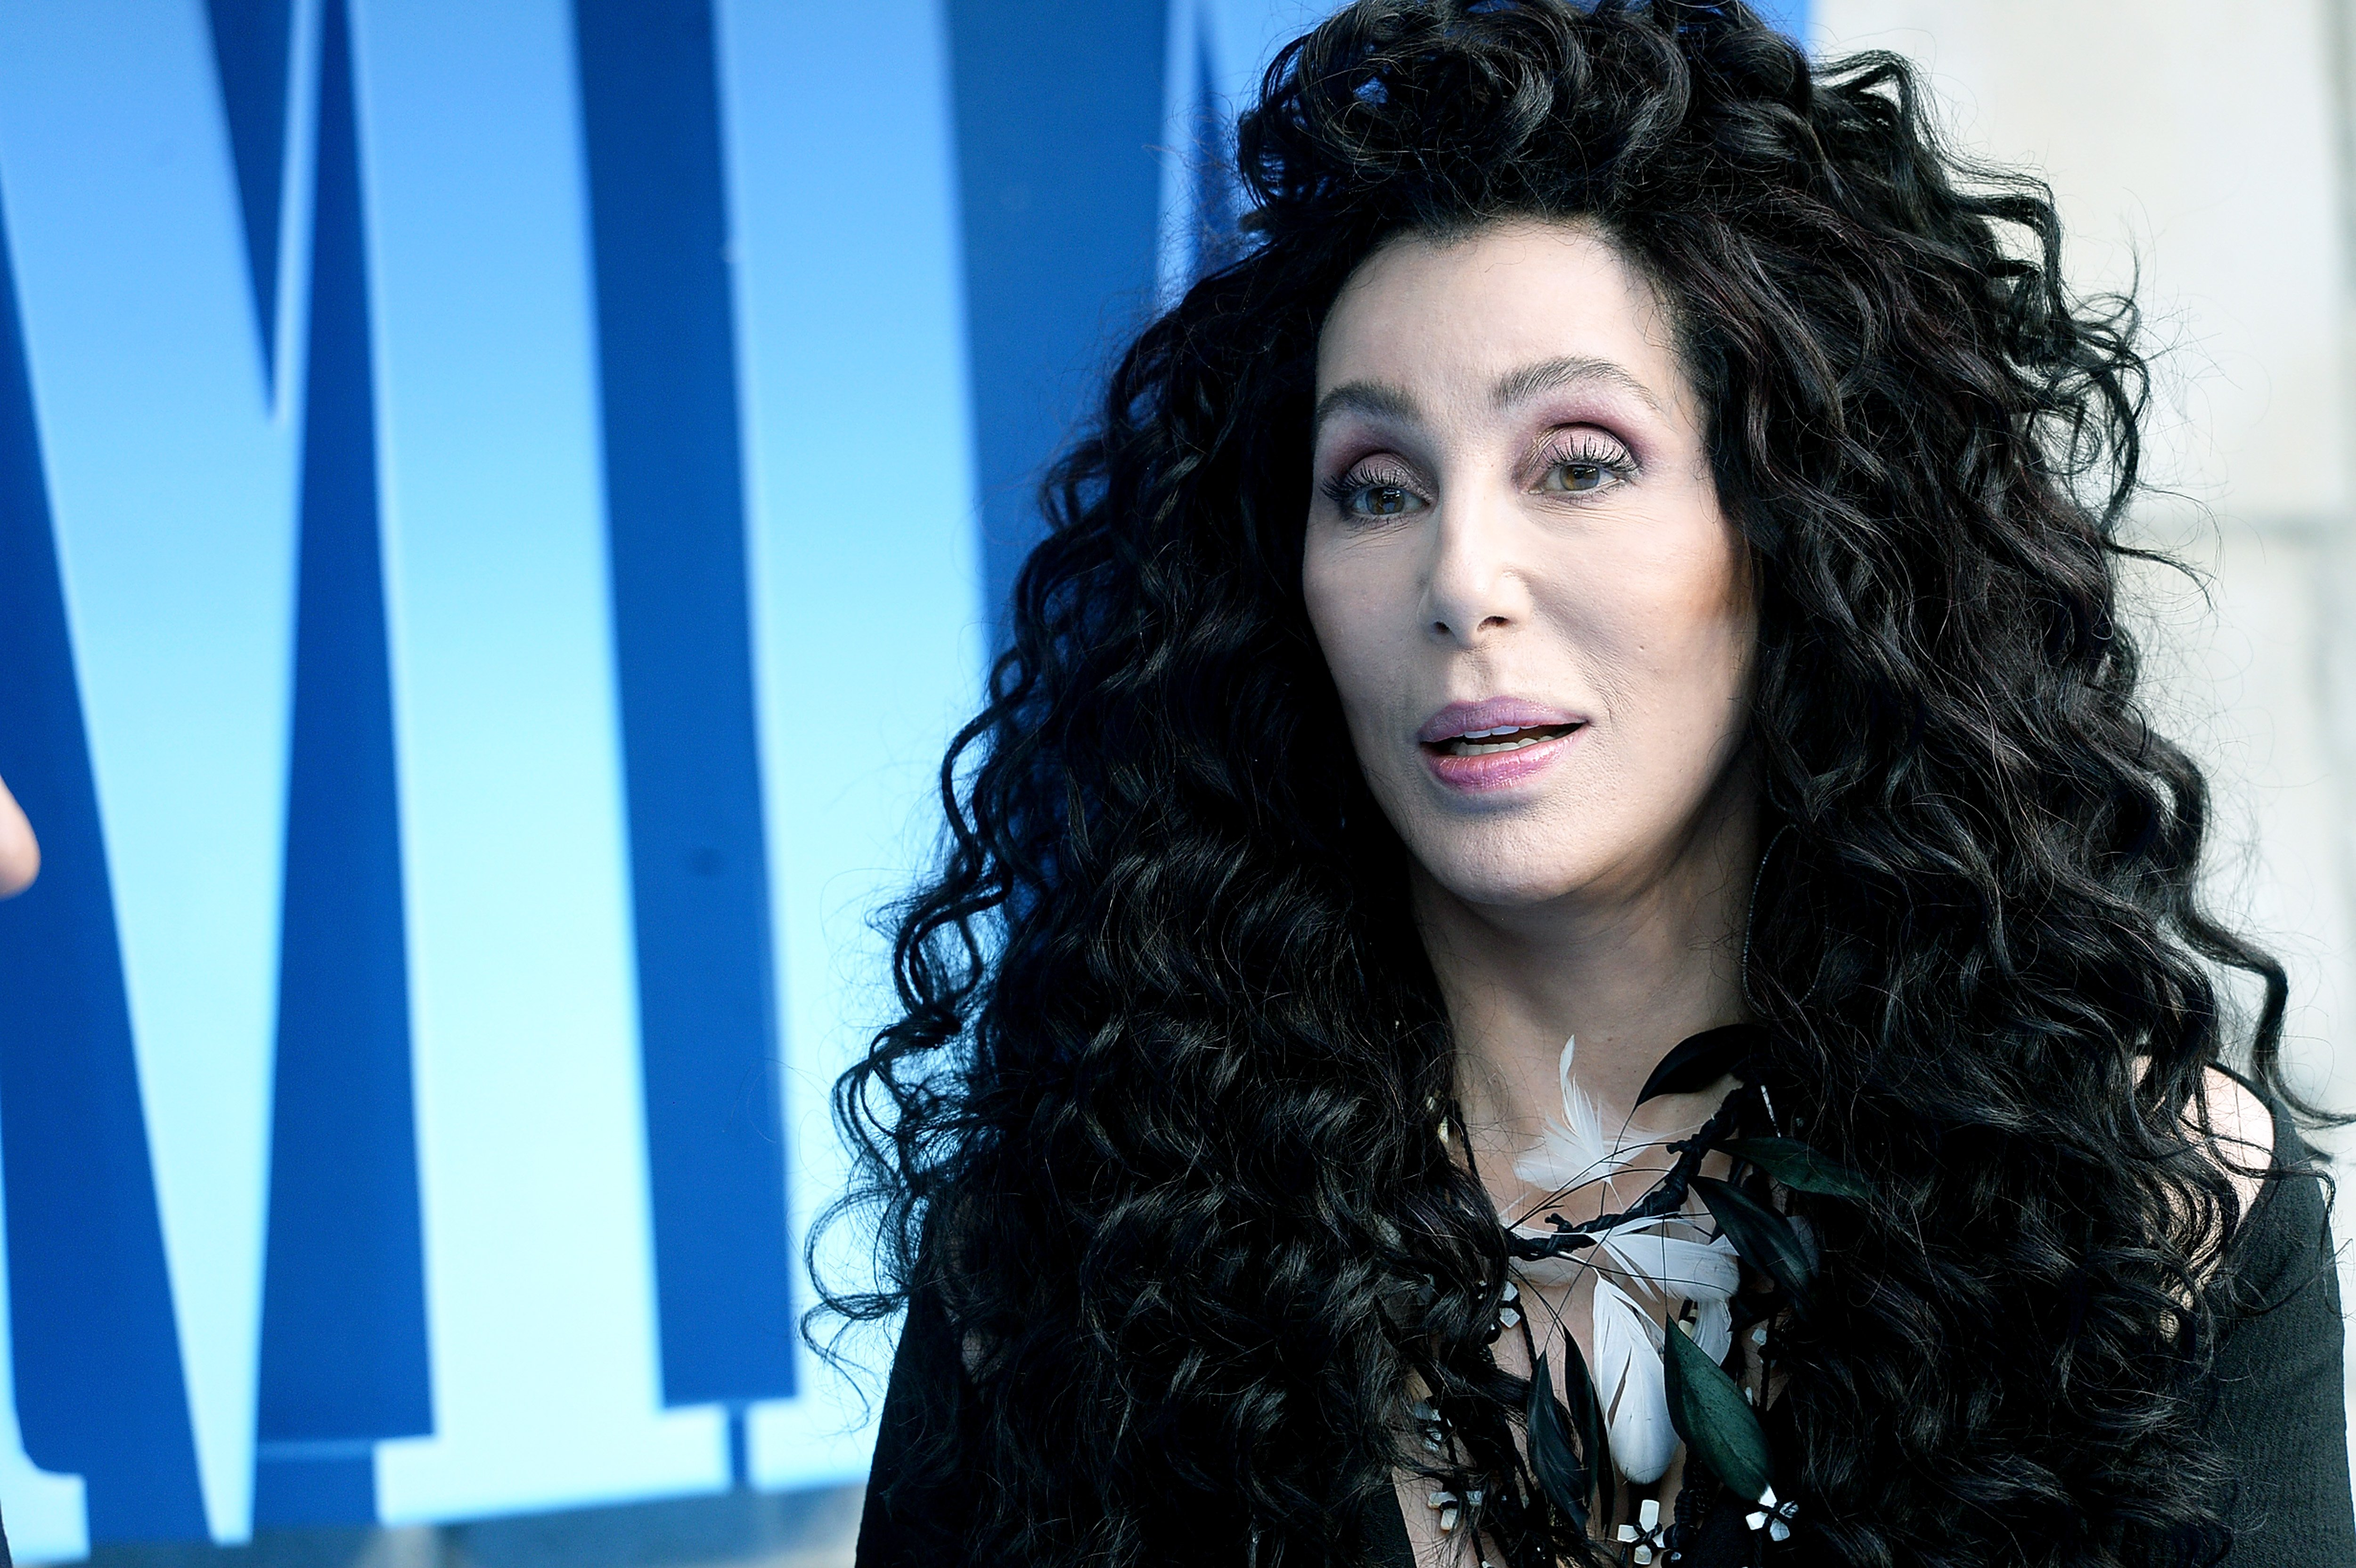 Image Source: Getty Images/Cher at the premiere of Mama Mia